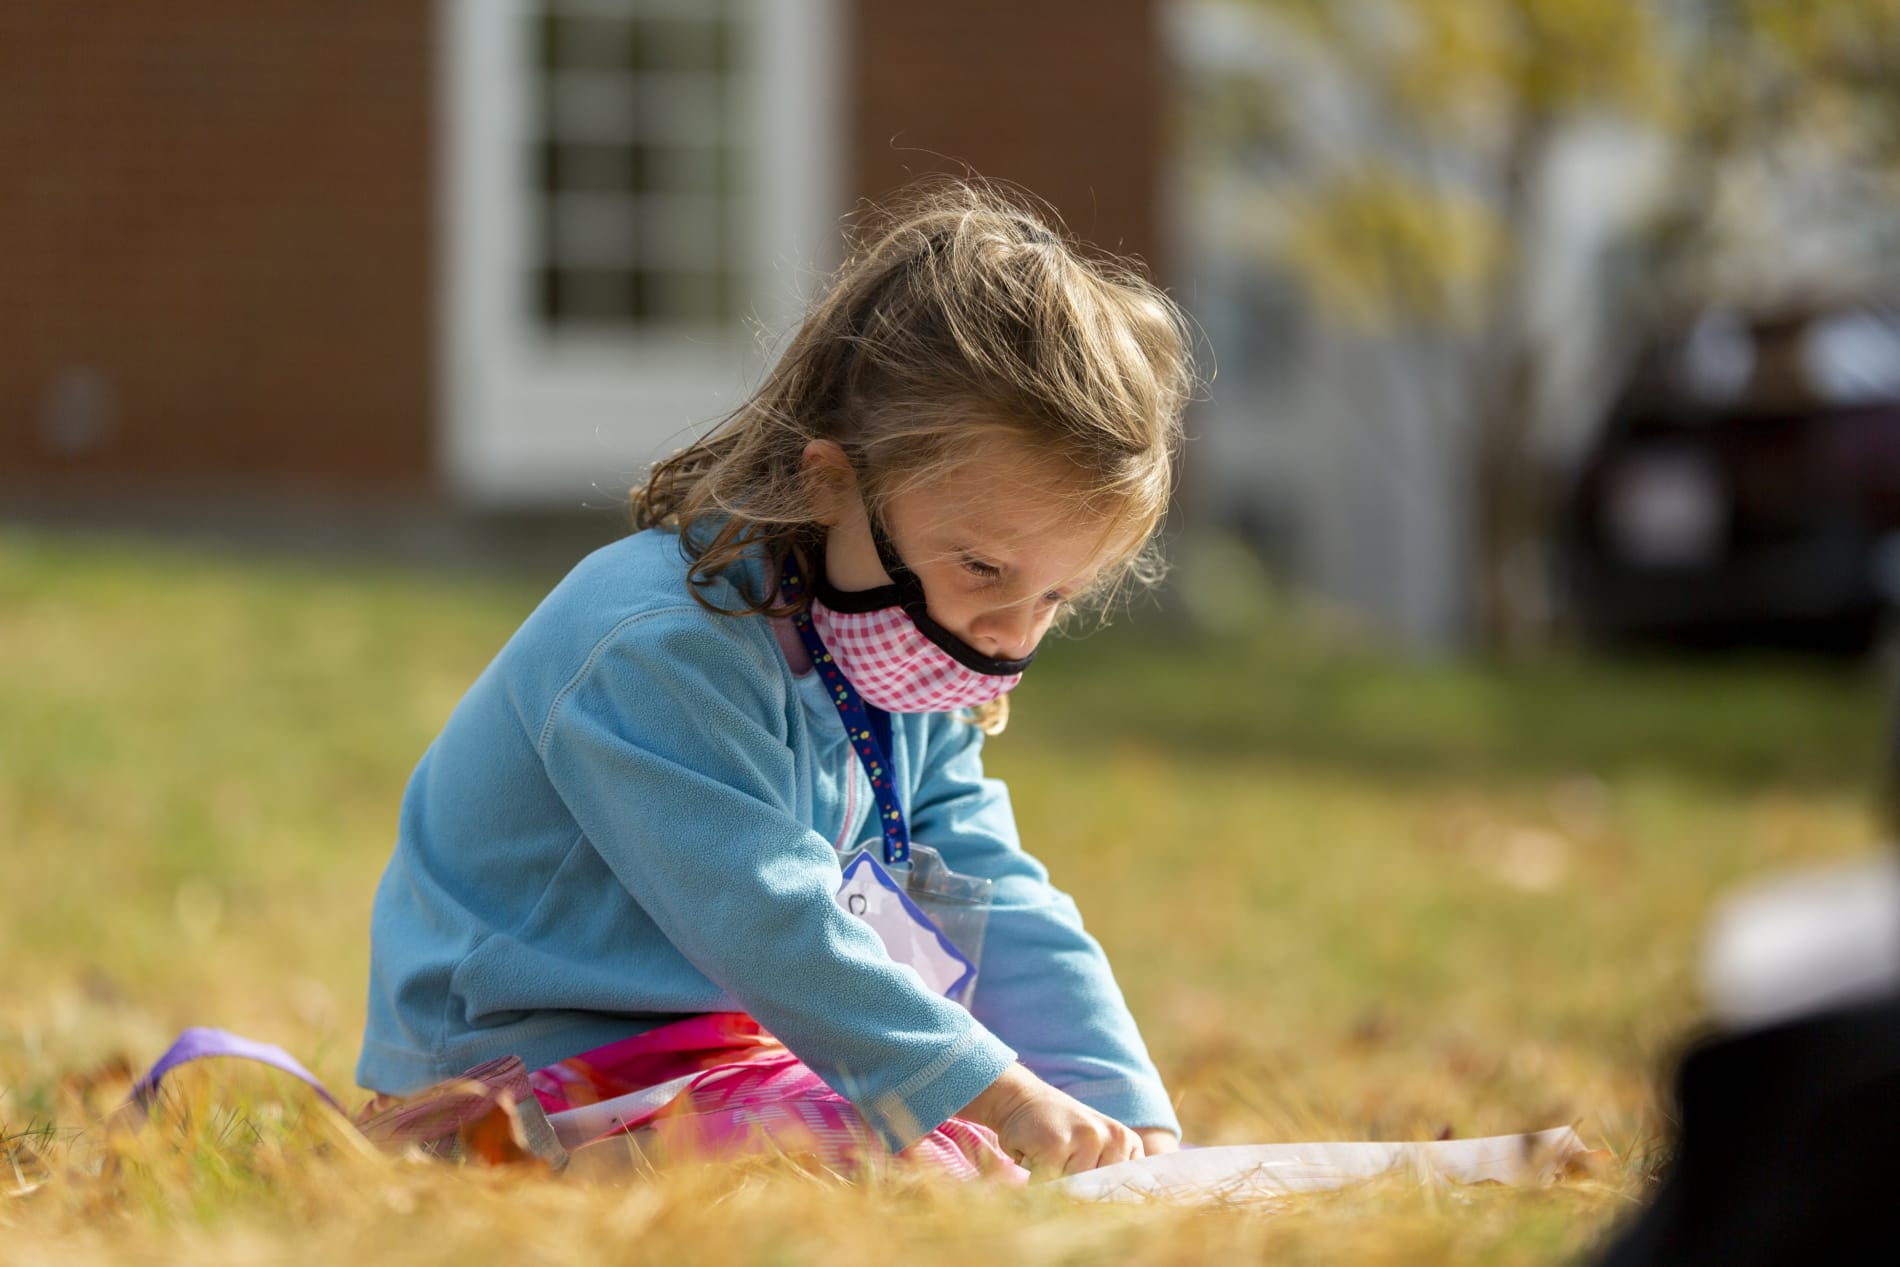 A young girl sits on the grass and colors